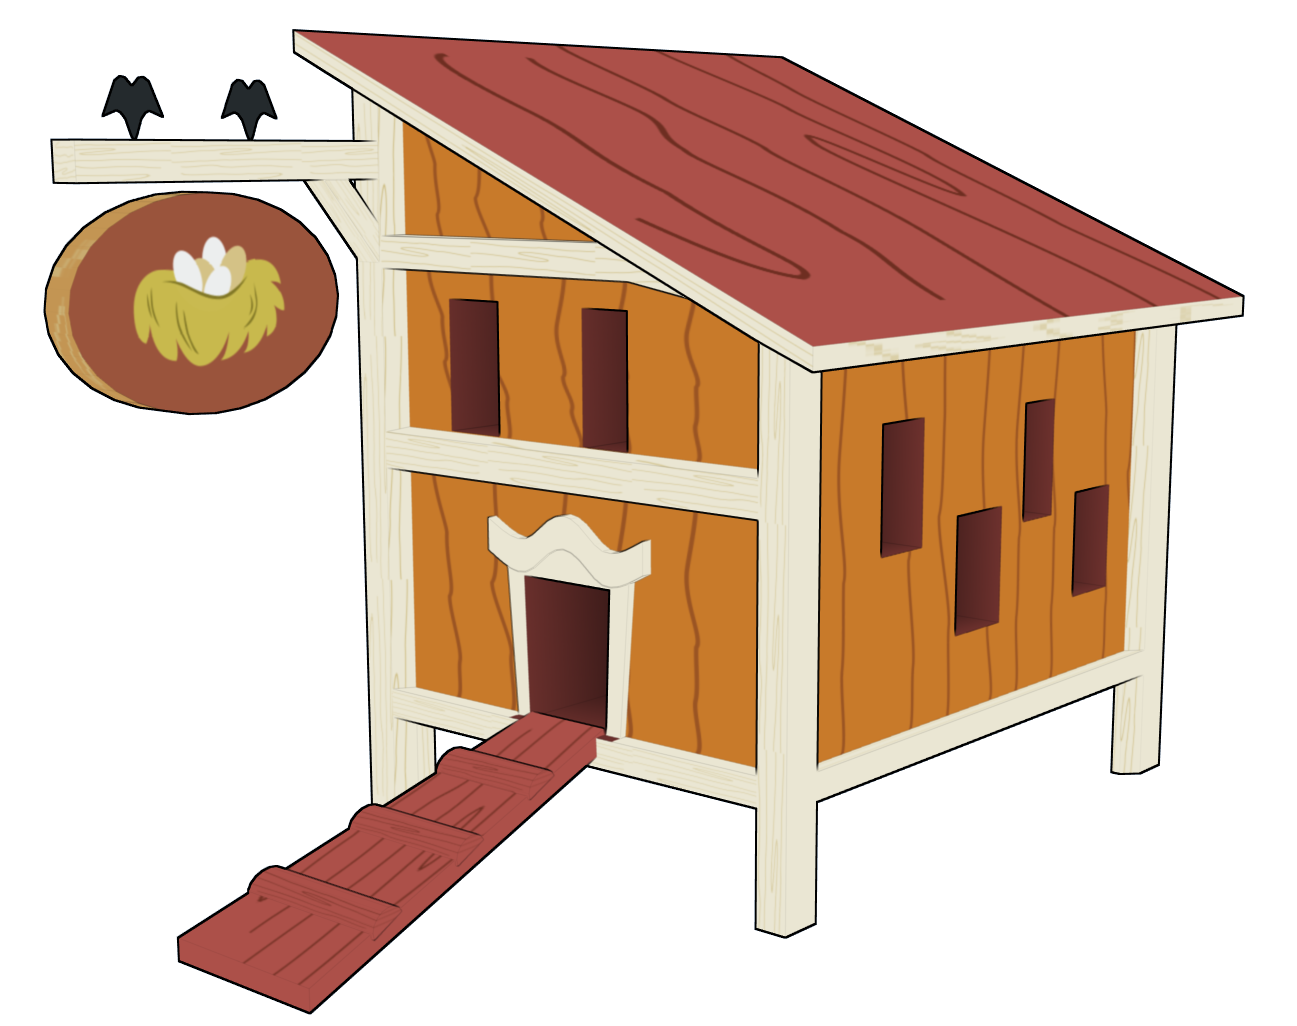 CHICKEN COOP CLIP ART.